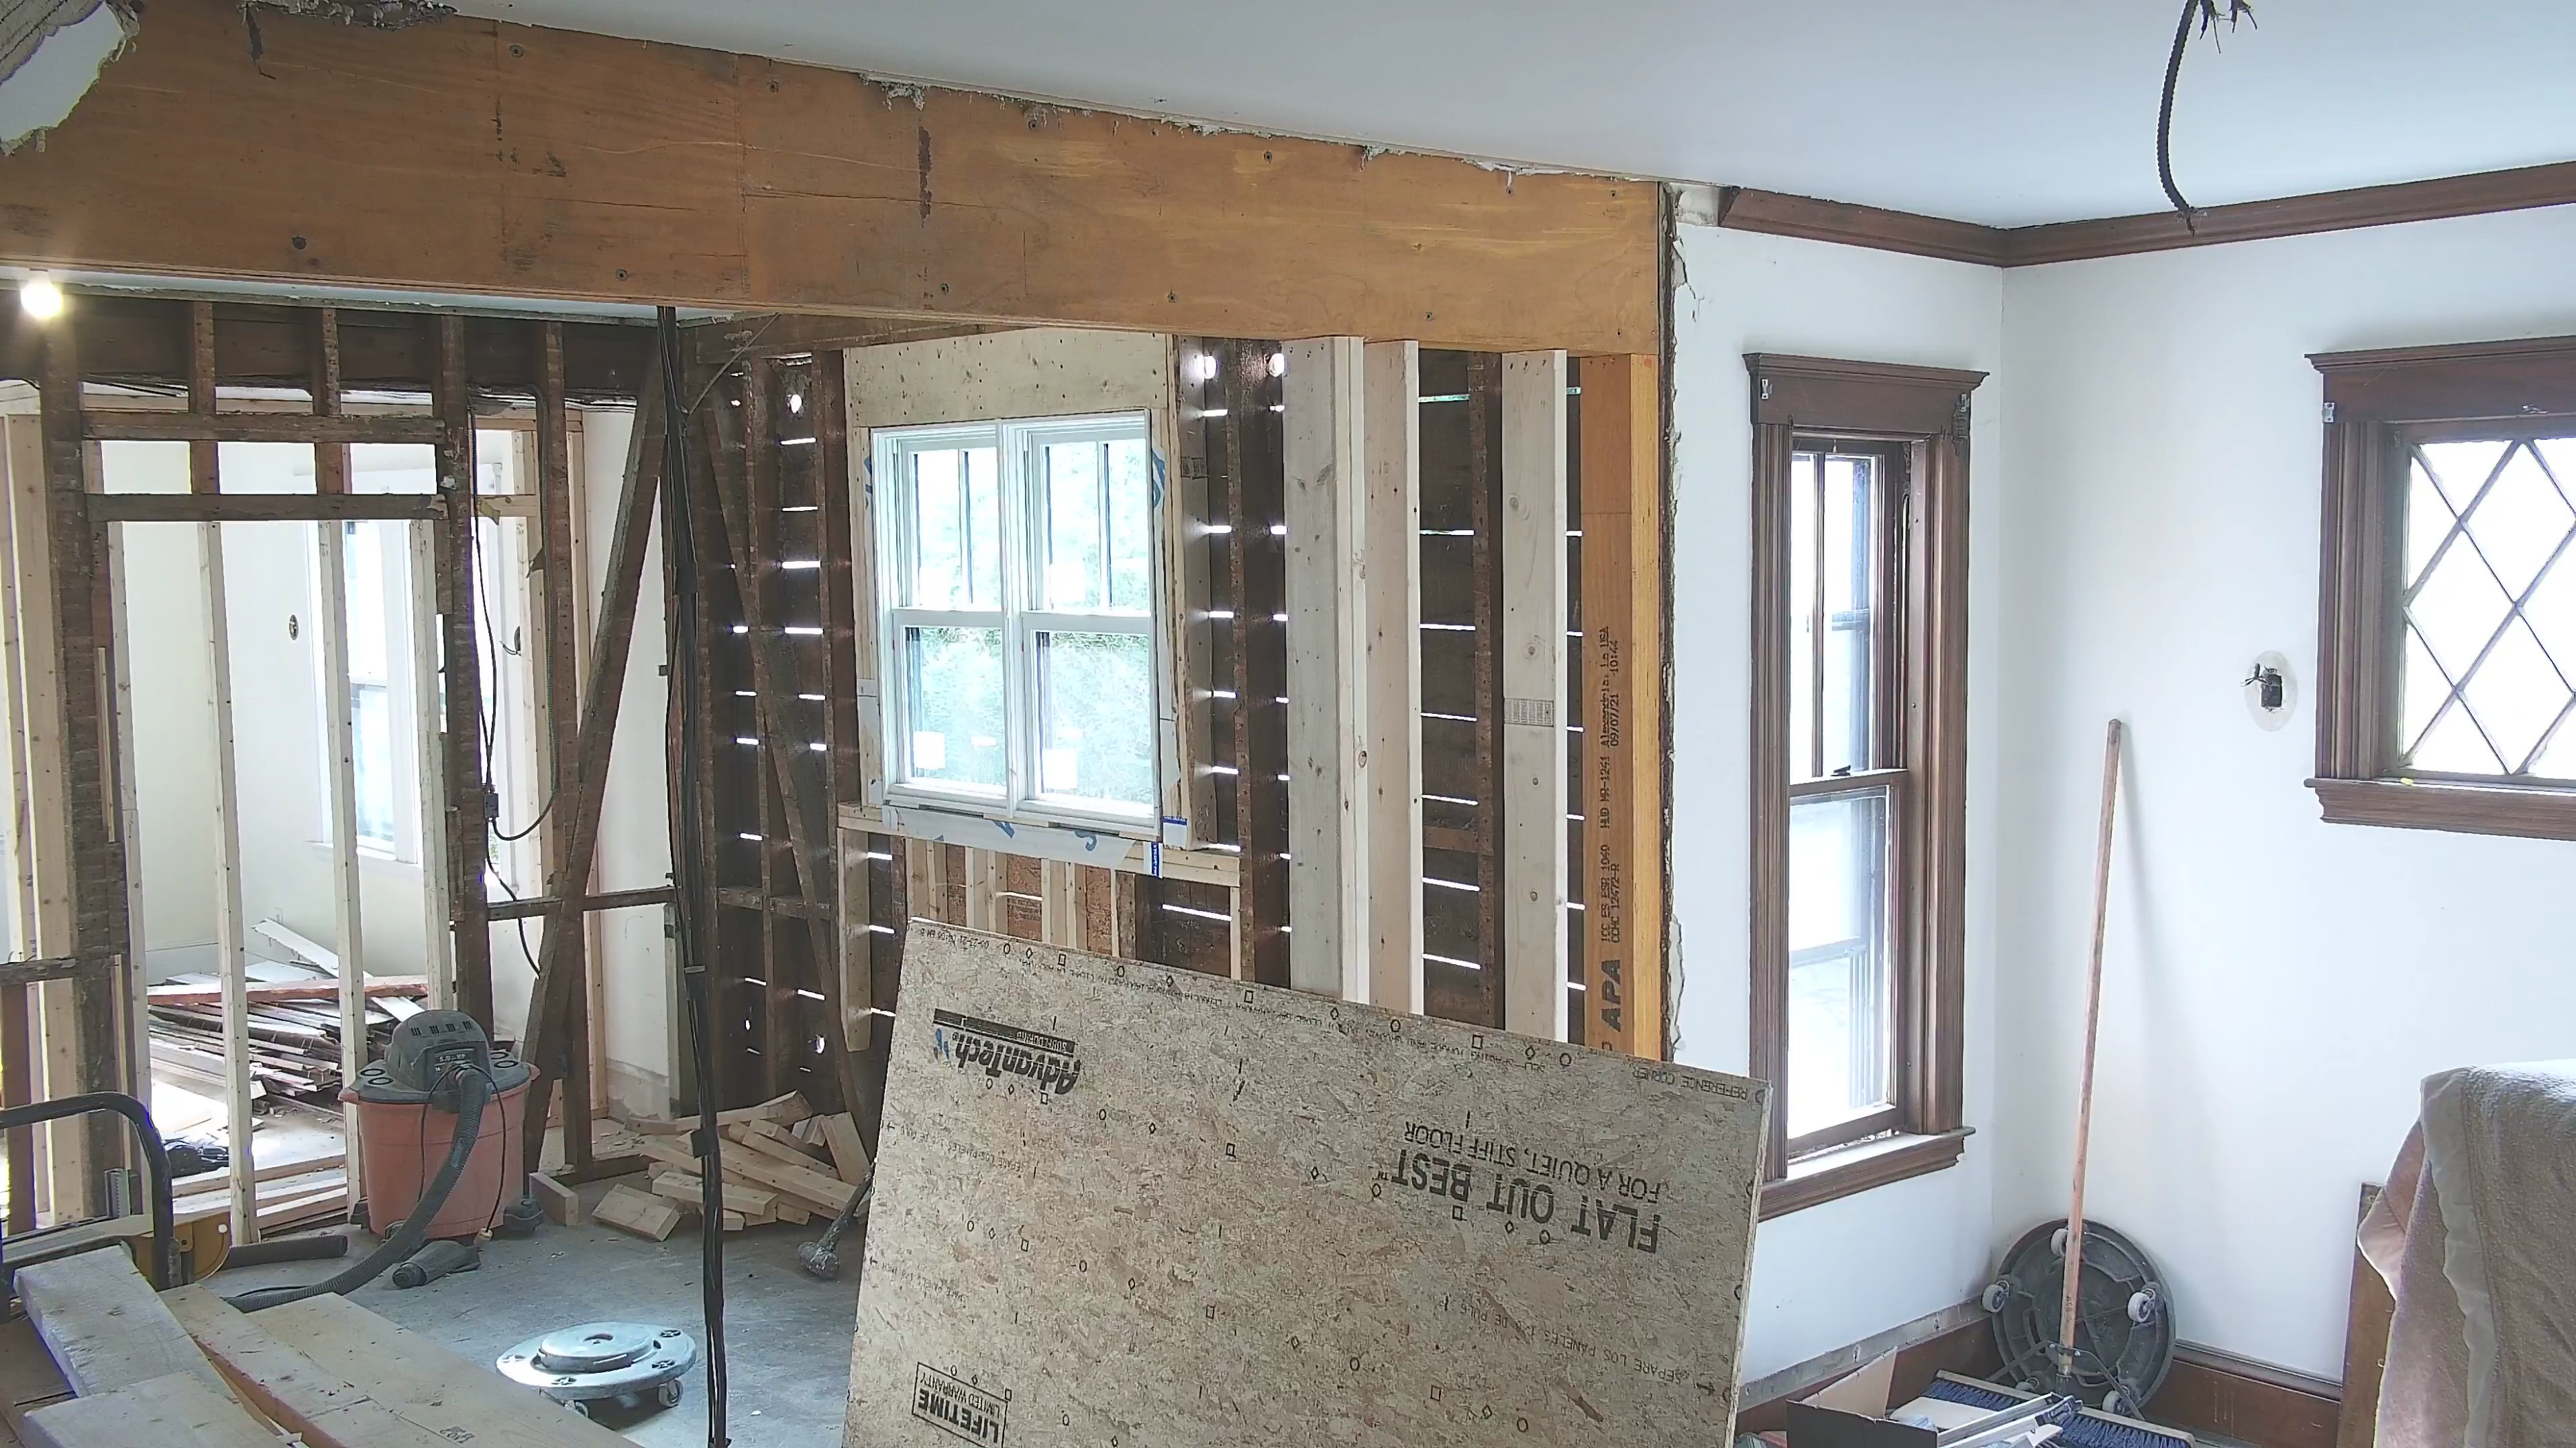 Interior webcam showing the West Roxbury project